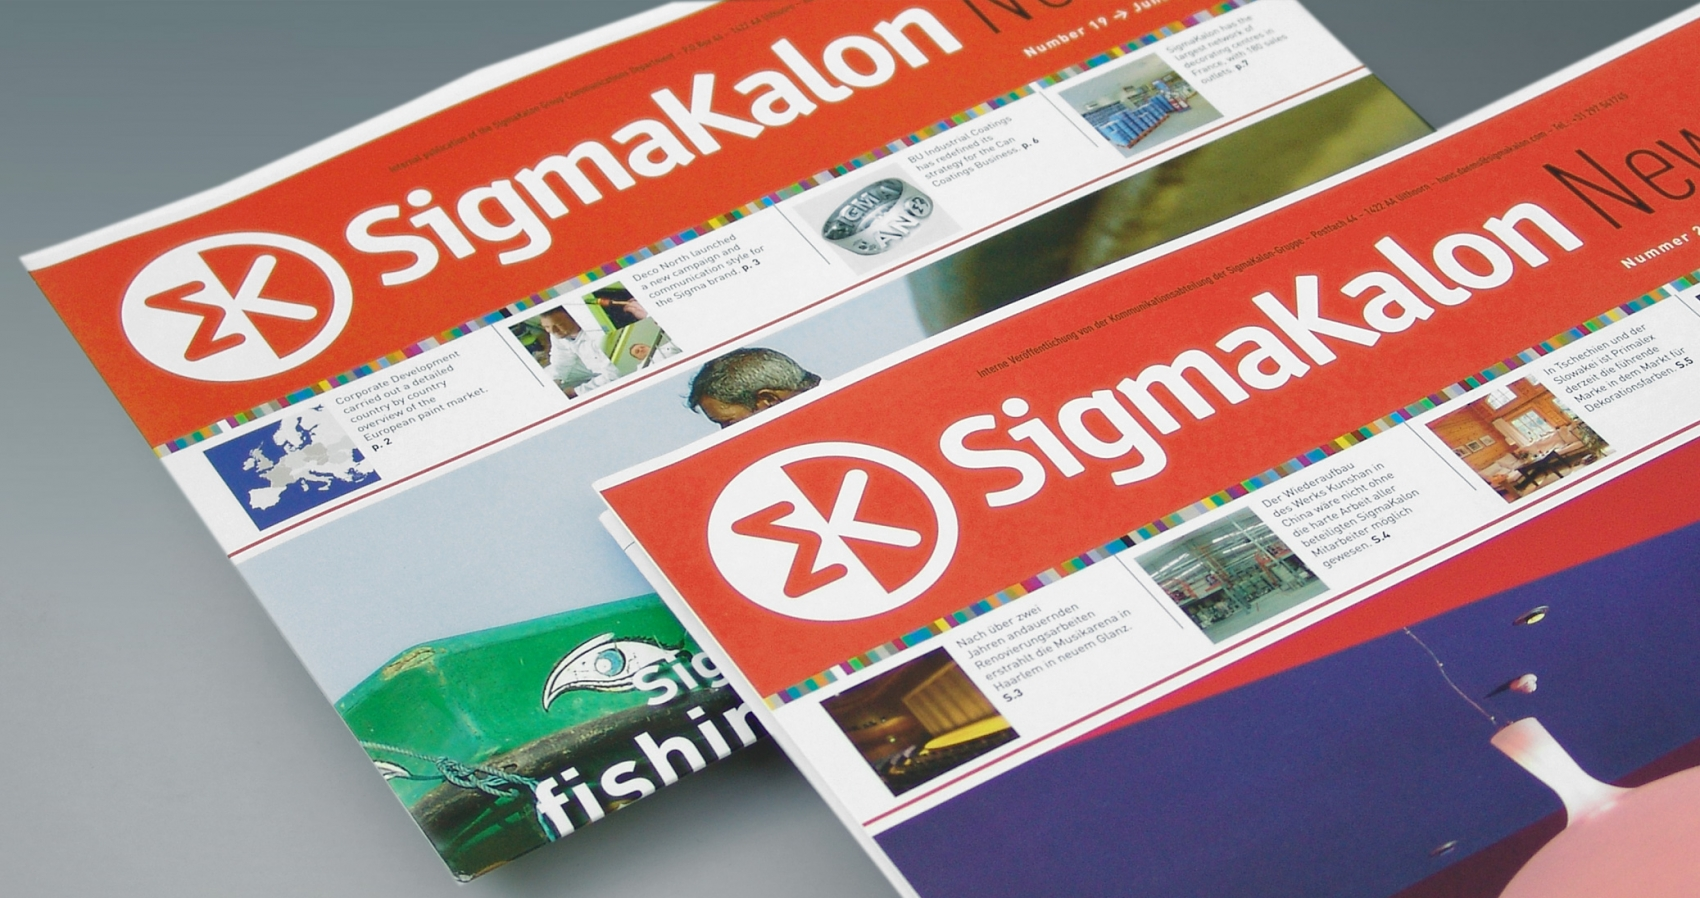 Sigmakalon - Newsletter